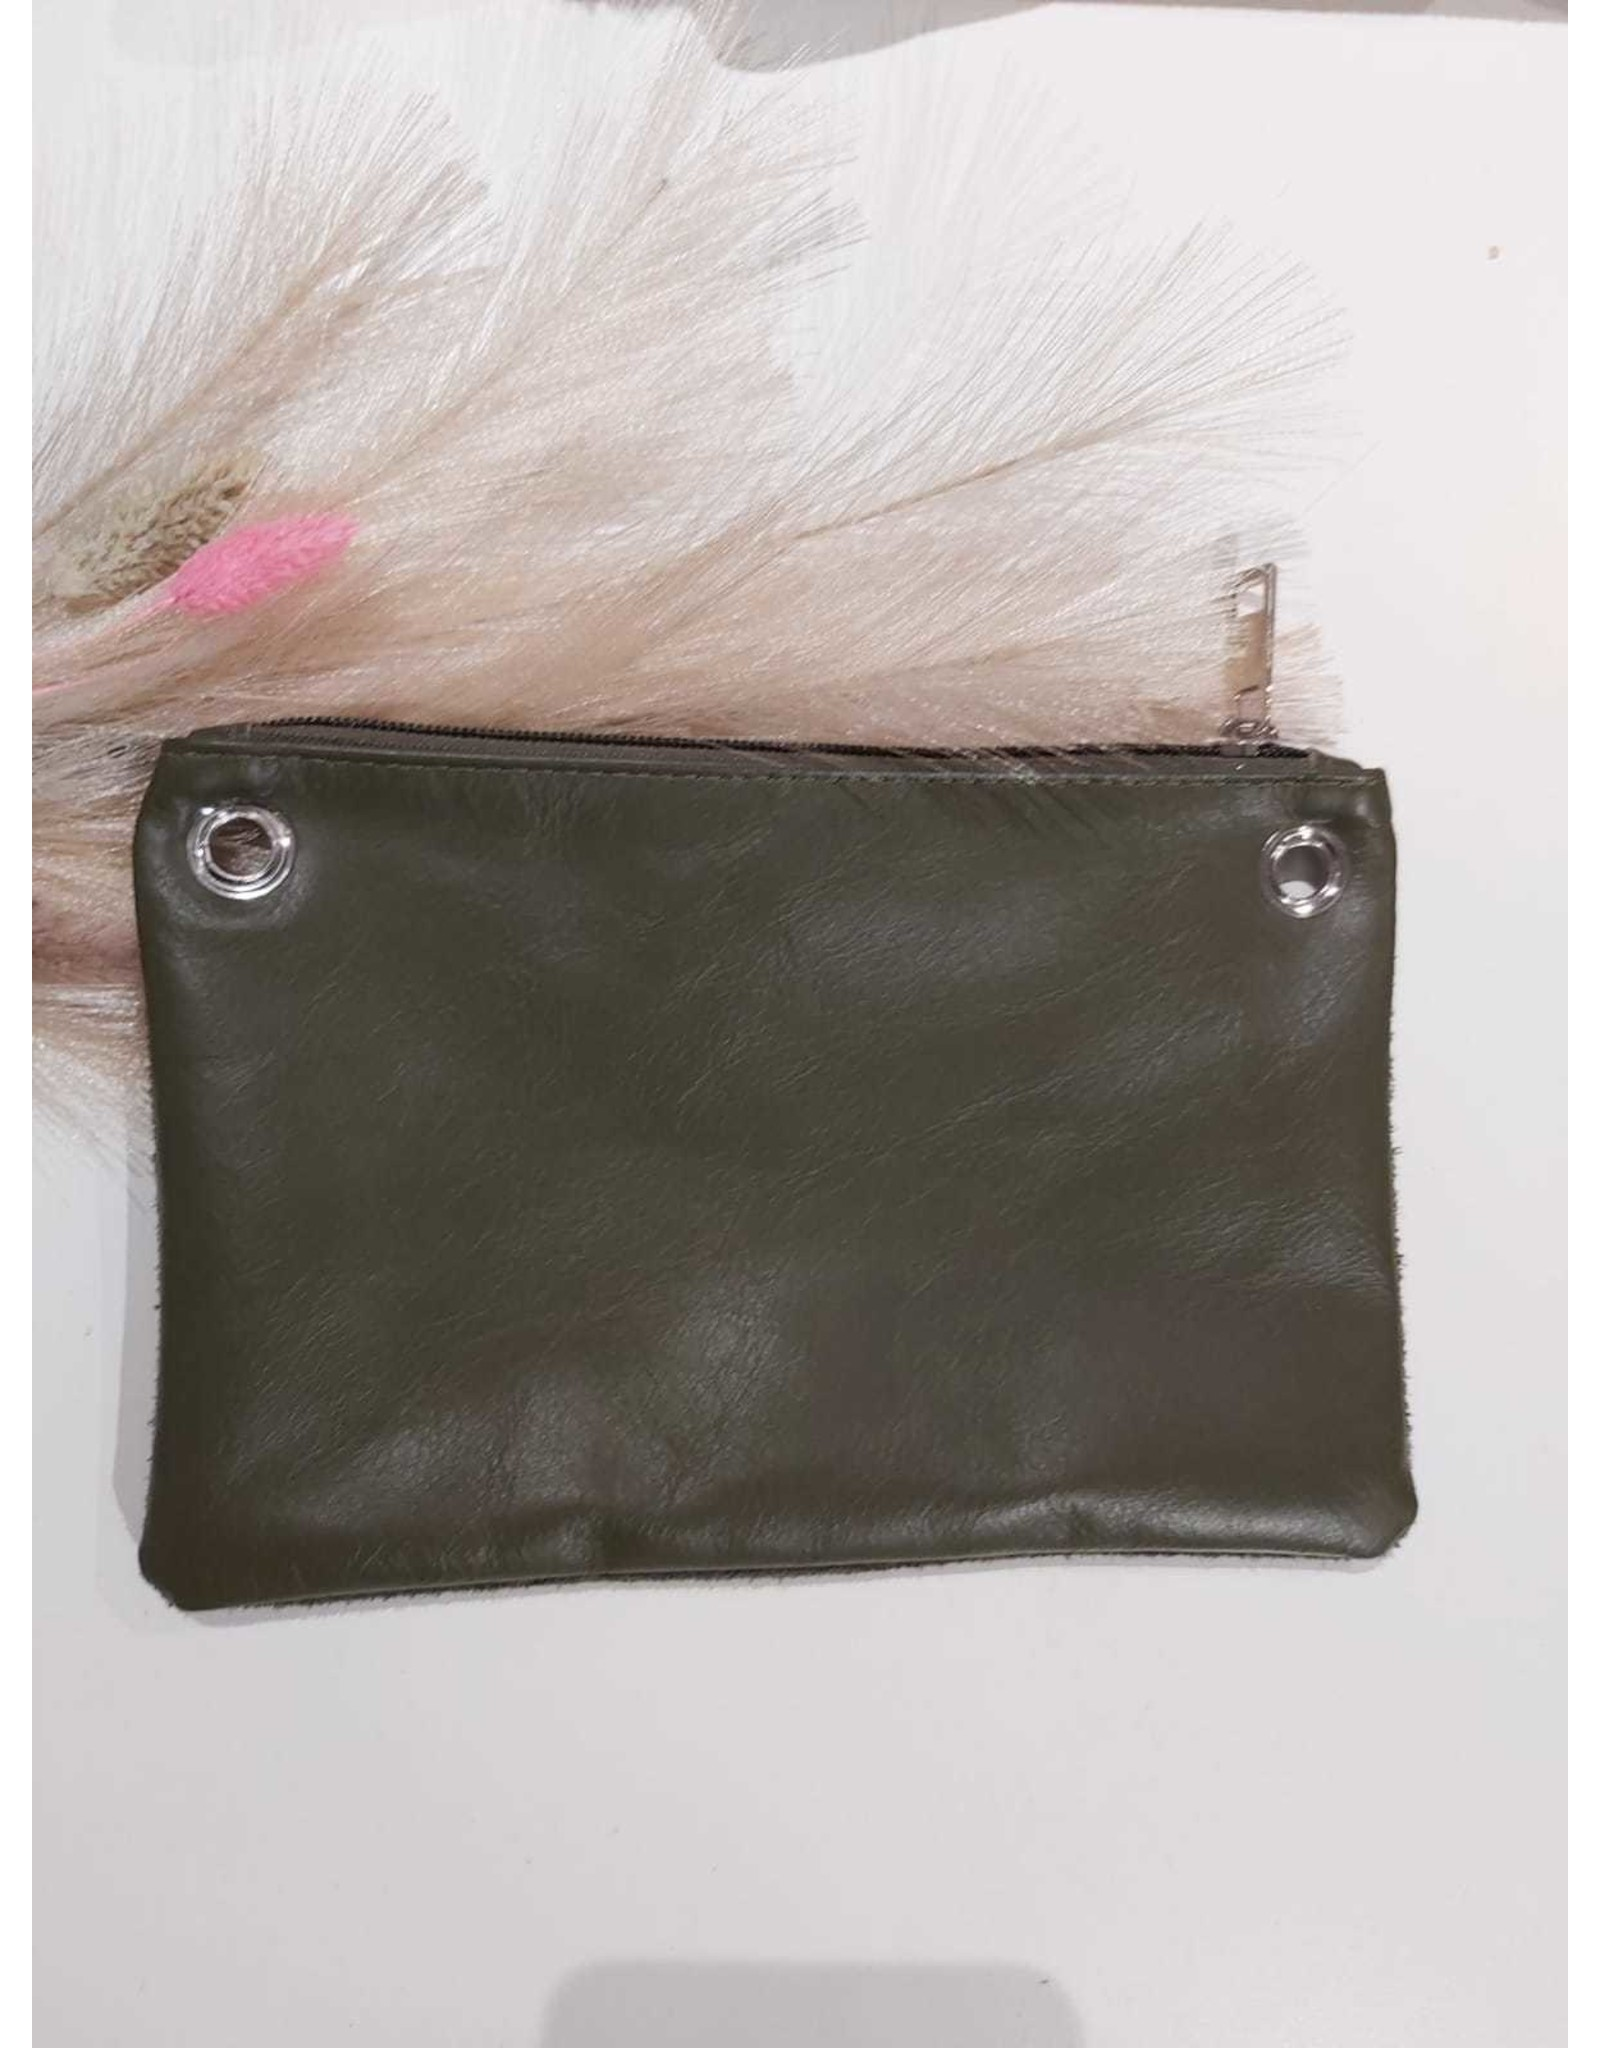 Carry 2 Care Carry 2 Care bag groen suede/leer